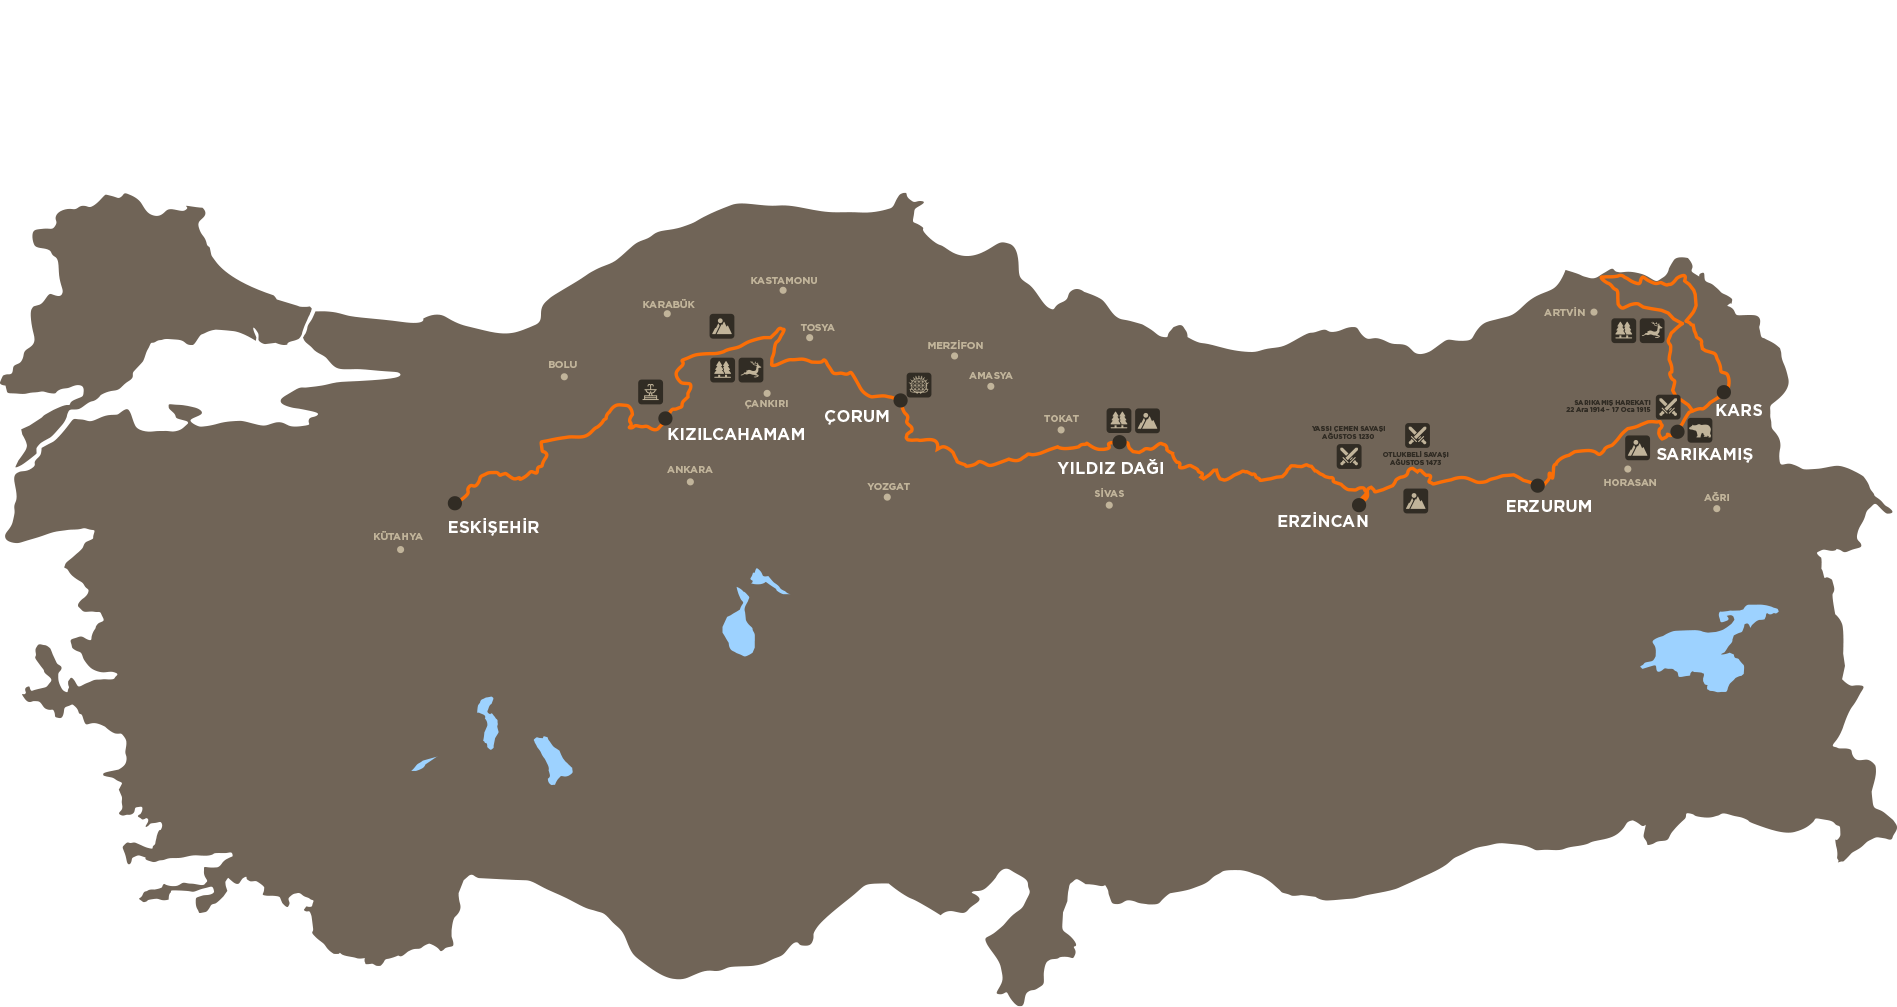 2021 ROUTE